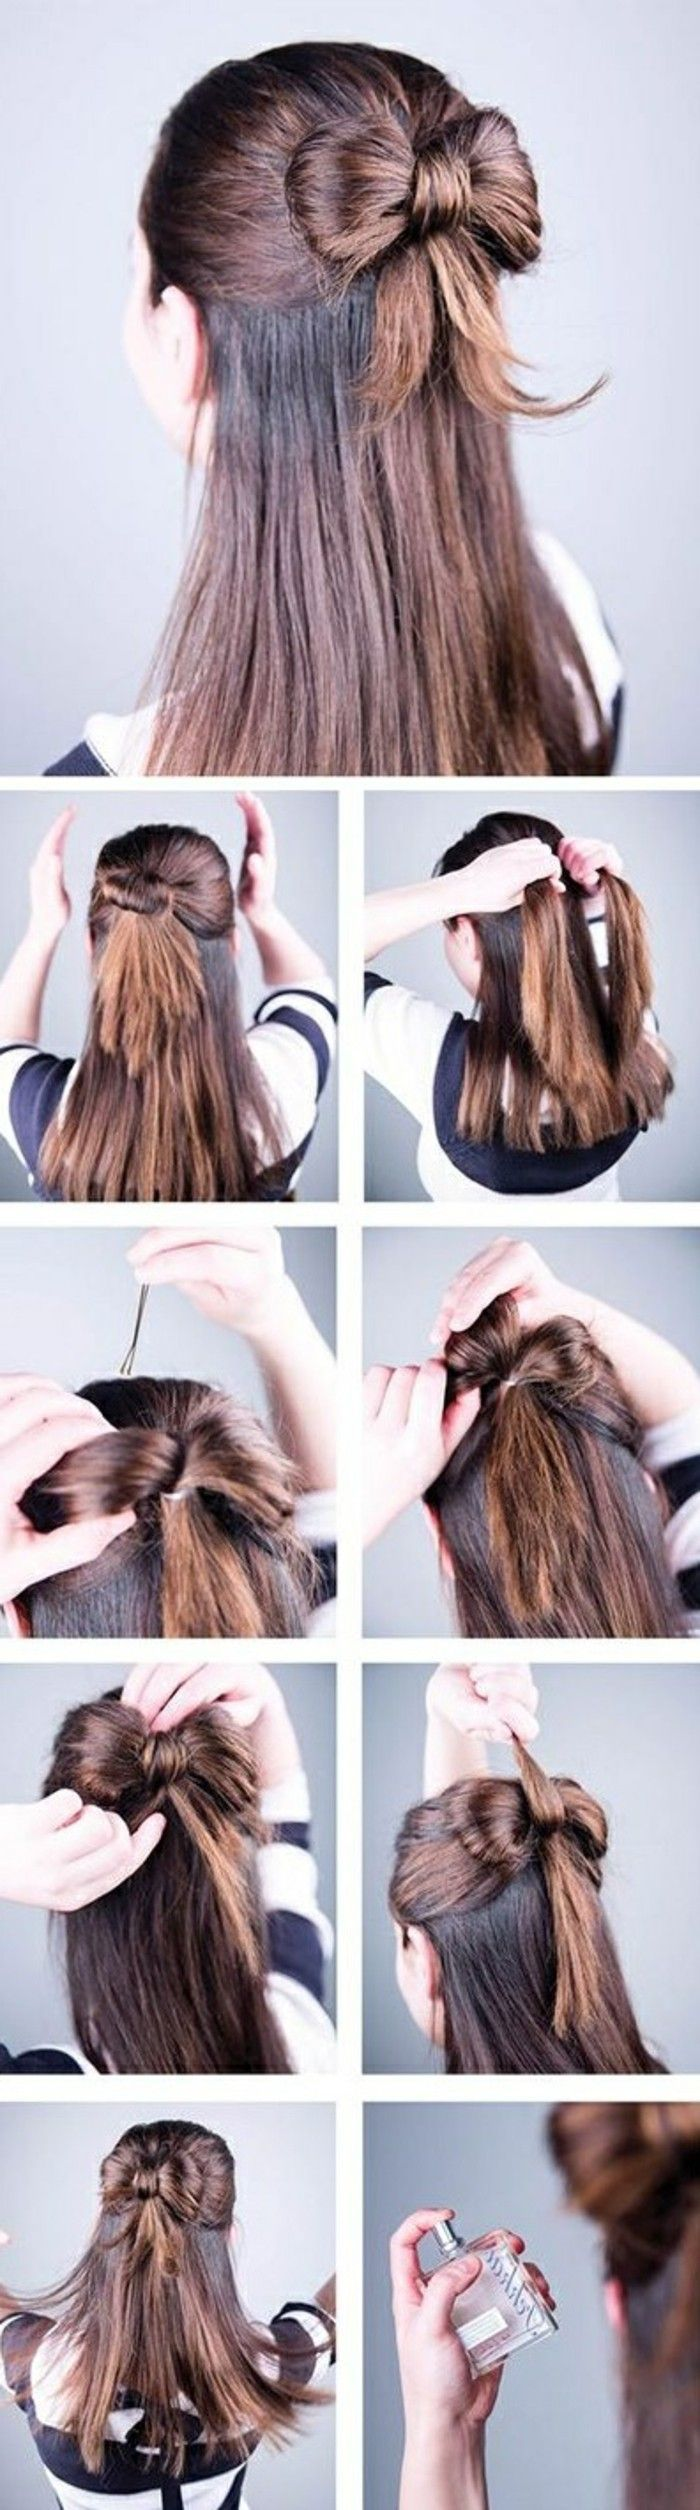 1001 Ideas For Beautiful Hairstyles Plus Instructions For Making Your Own Beautiful Hairstyle Hairstyles Ideas Hair Styles Hairstyle Long Hair Styles